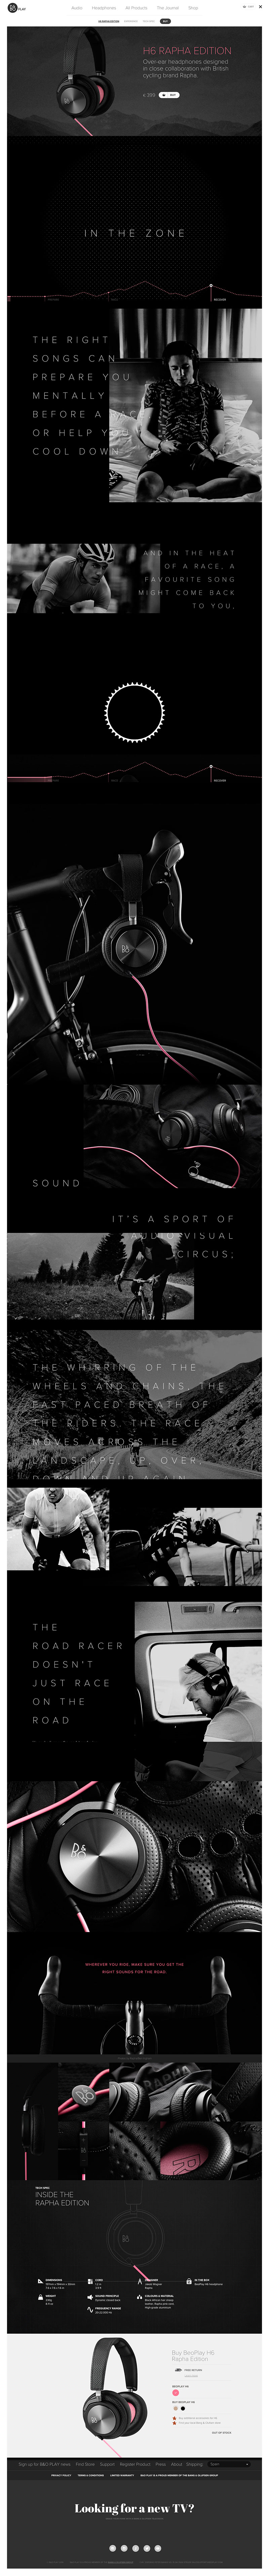 H6 RAPHA EDITION interface web design